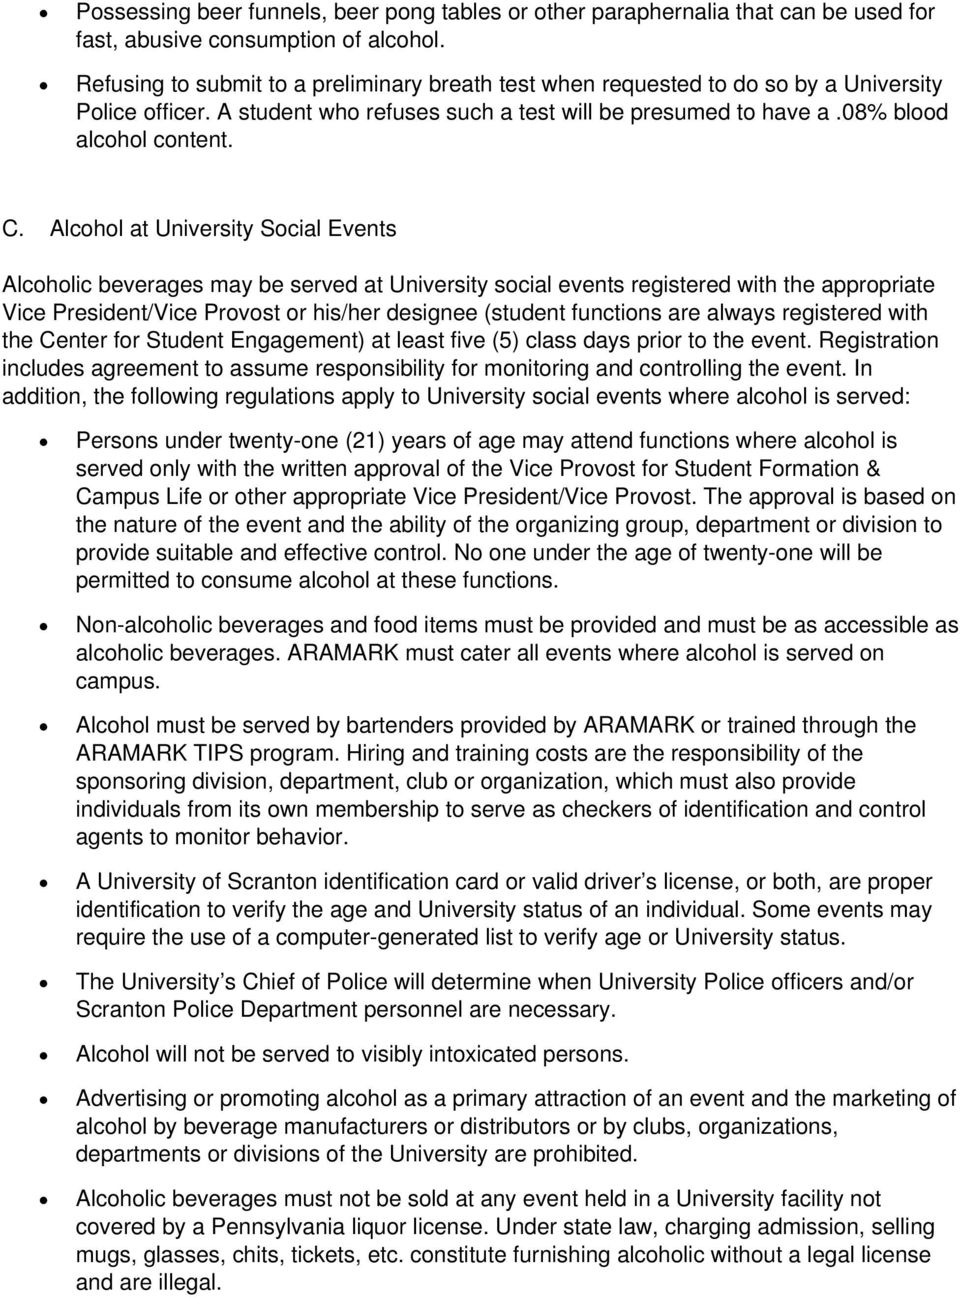 Alcohol at University Social Events Alcoholic beverages may be served at University social events registered with the appropriate Vice President/Vice Provost or his/her designee (student functions